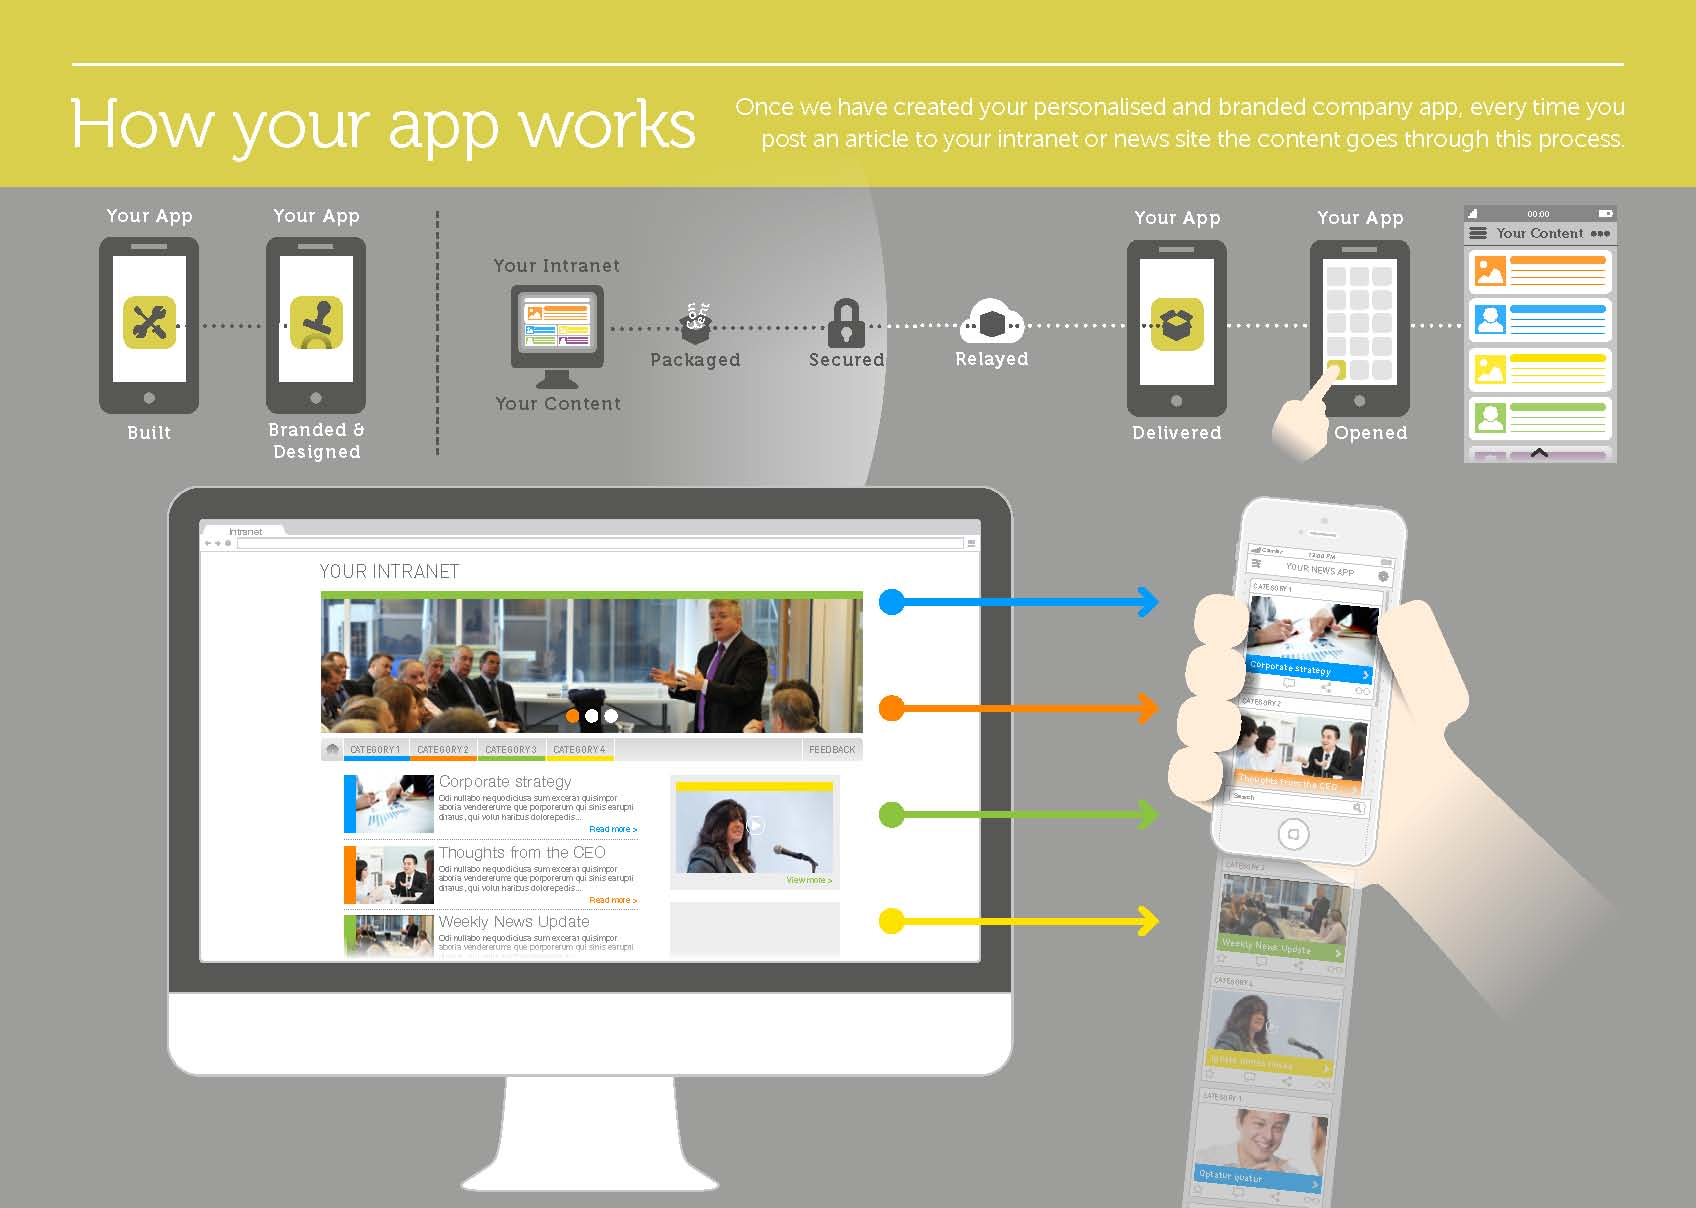 AppIC - How your app works